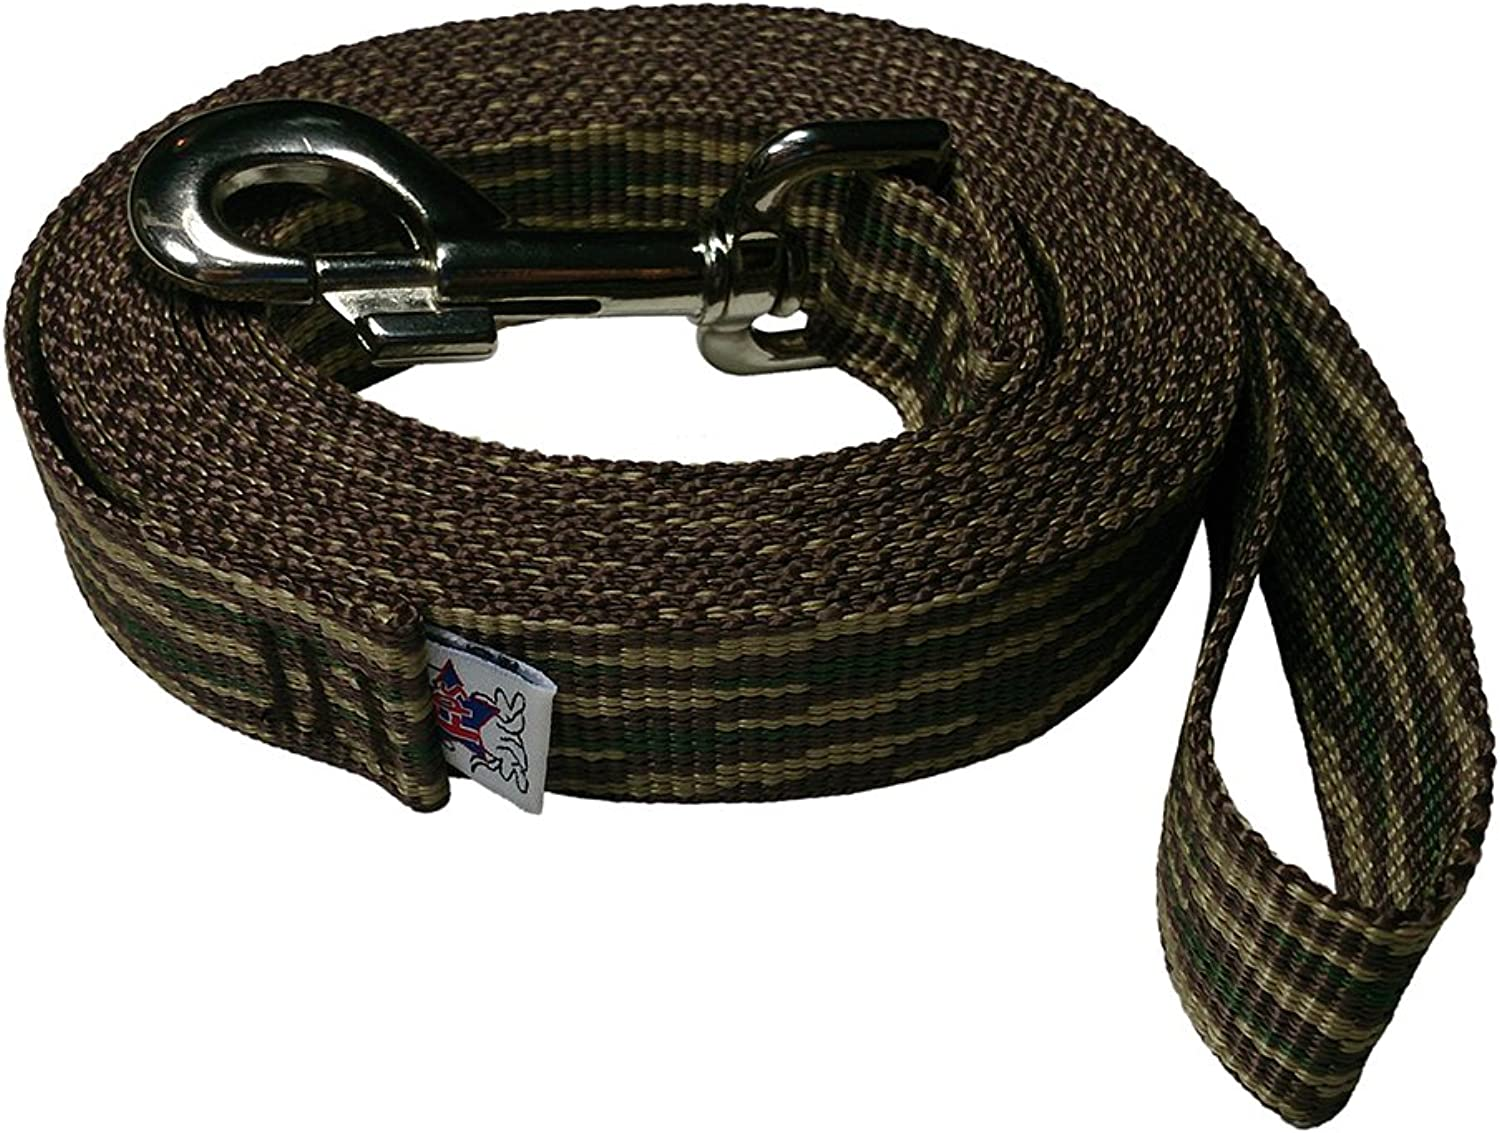 BeastMaster Freedom Pet 1 inch Polypropylene Dog Leash FPSPP50 Select Your Length and color (Woodland Camouflage, 25 FT)